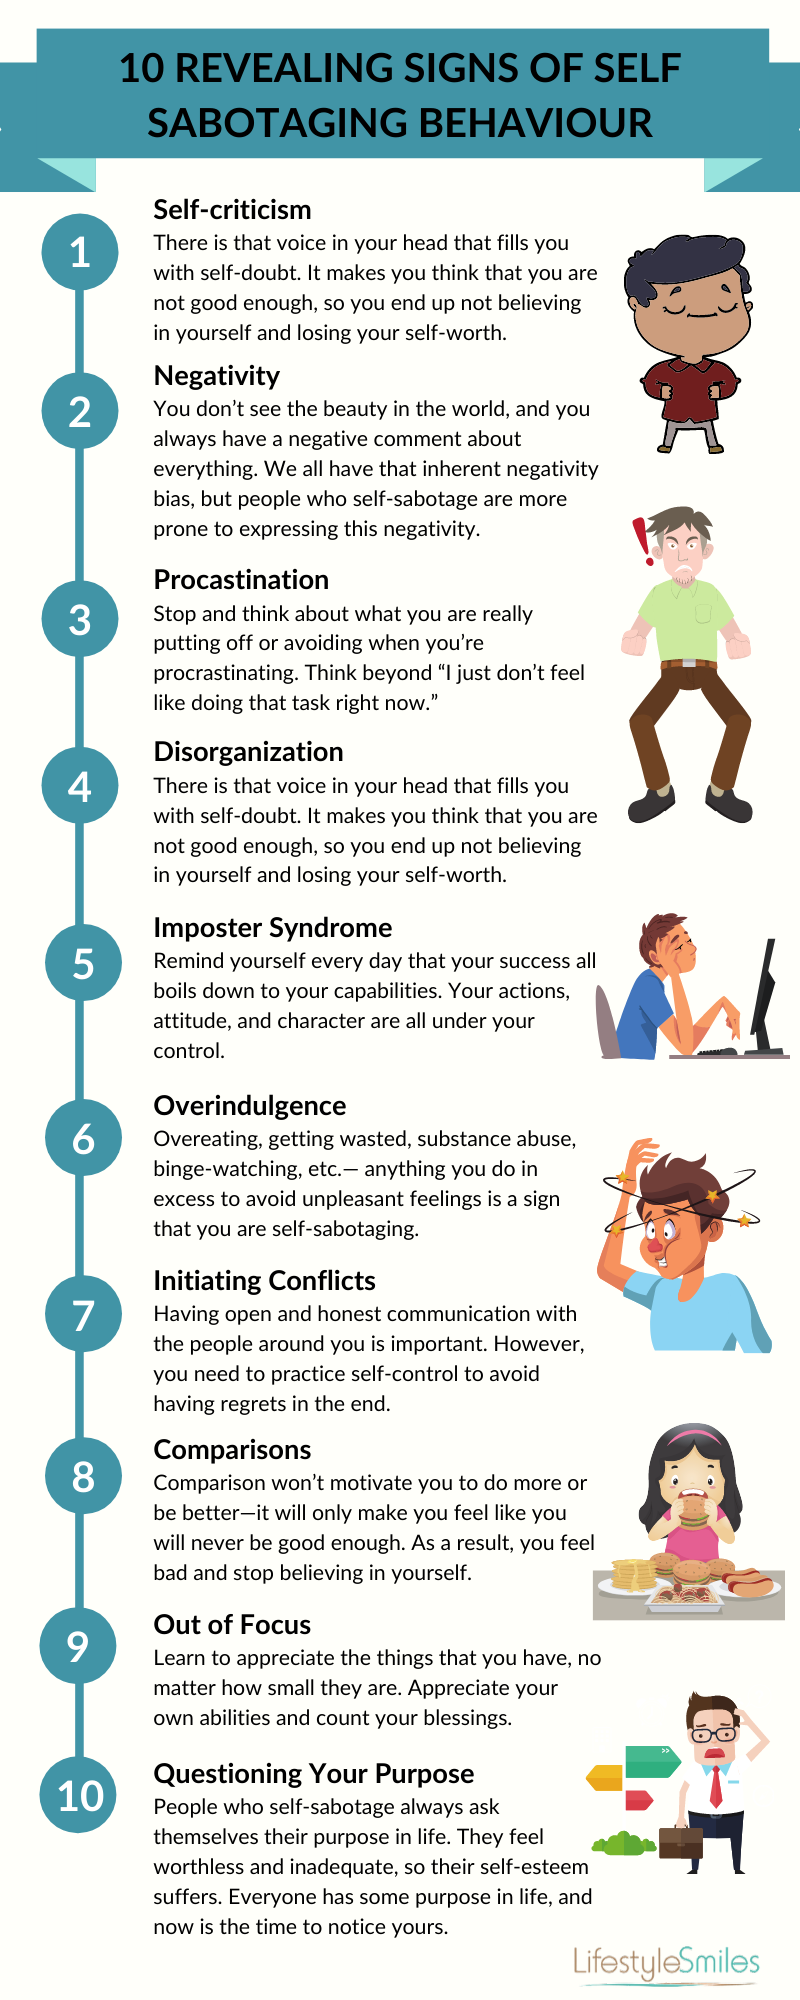 10 Revealing Signs of Self Sabotaging Behavior #infographic #Revealing Signs #Sabotaging Behavior #Behavior #Happiness